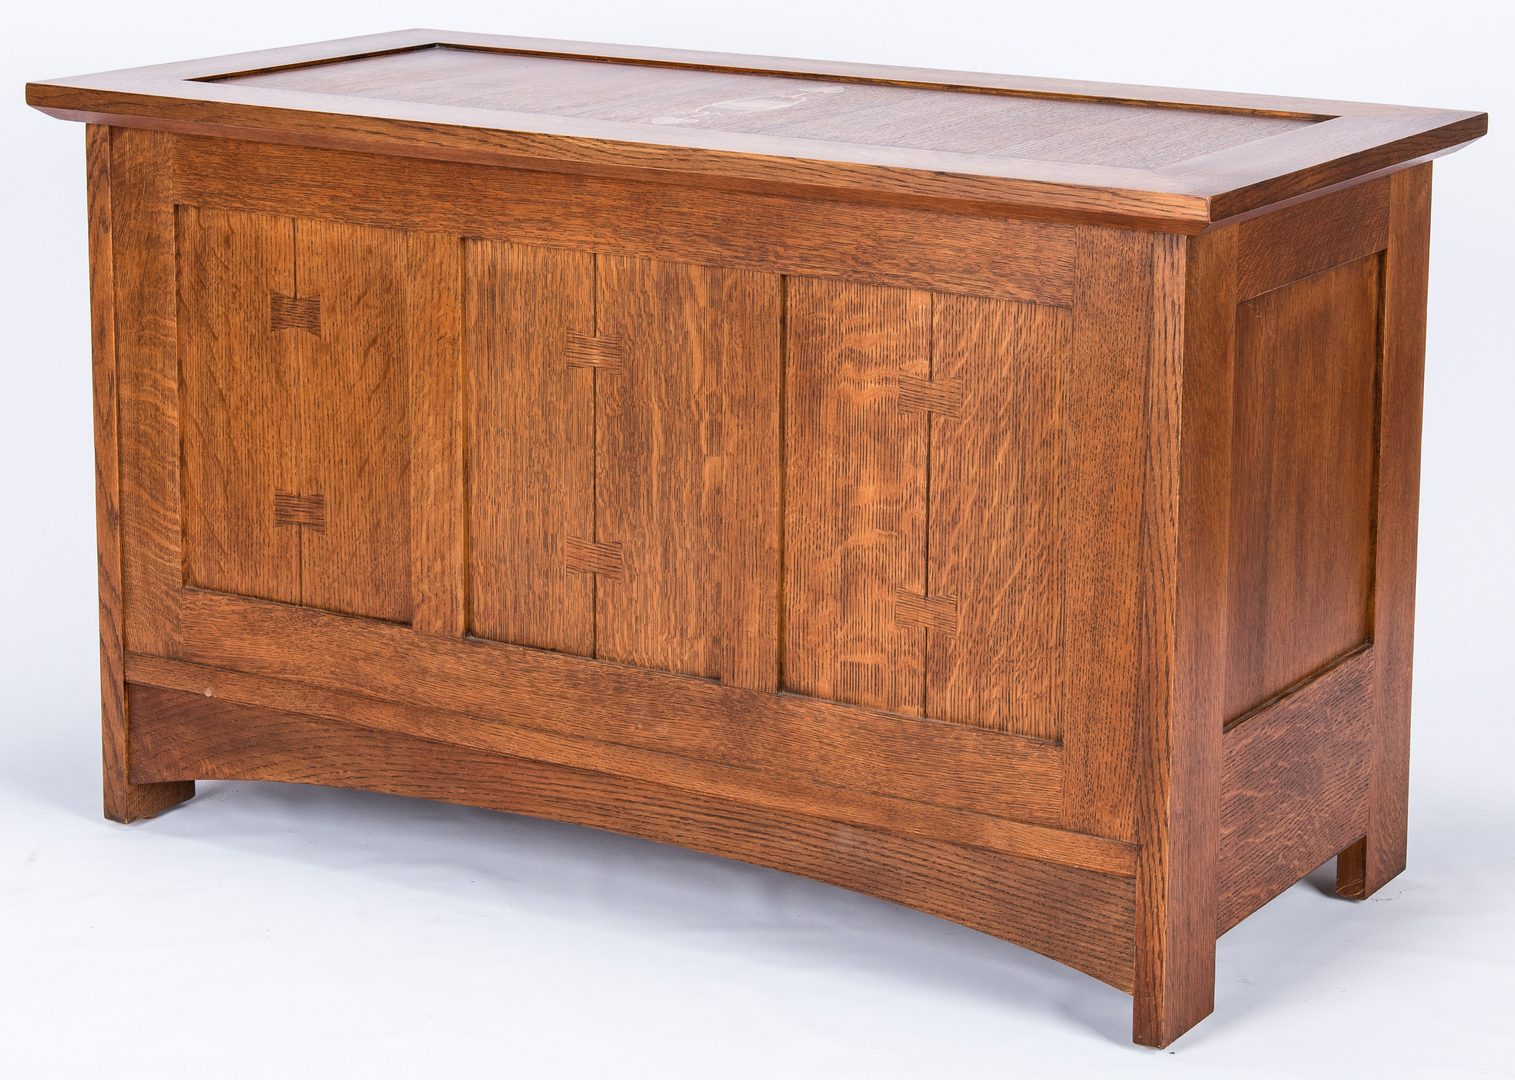 Lot 117: Stickley Inlaid Oak Inlaid Chest